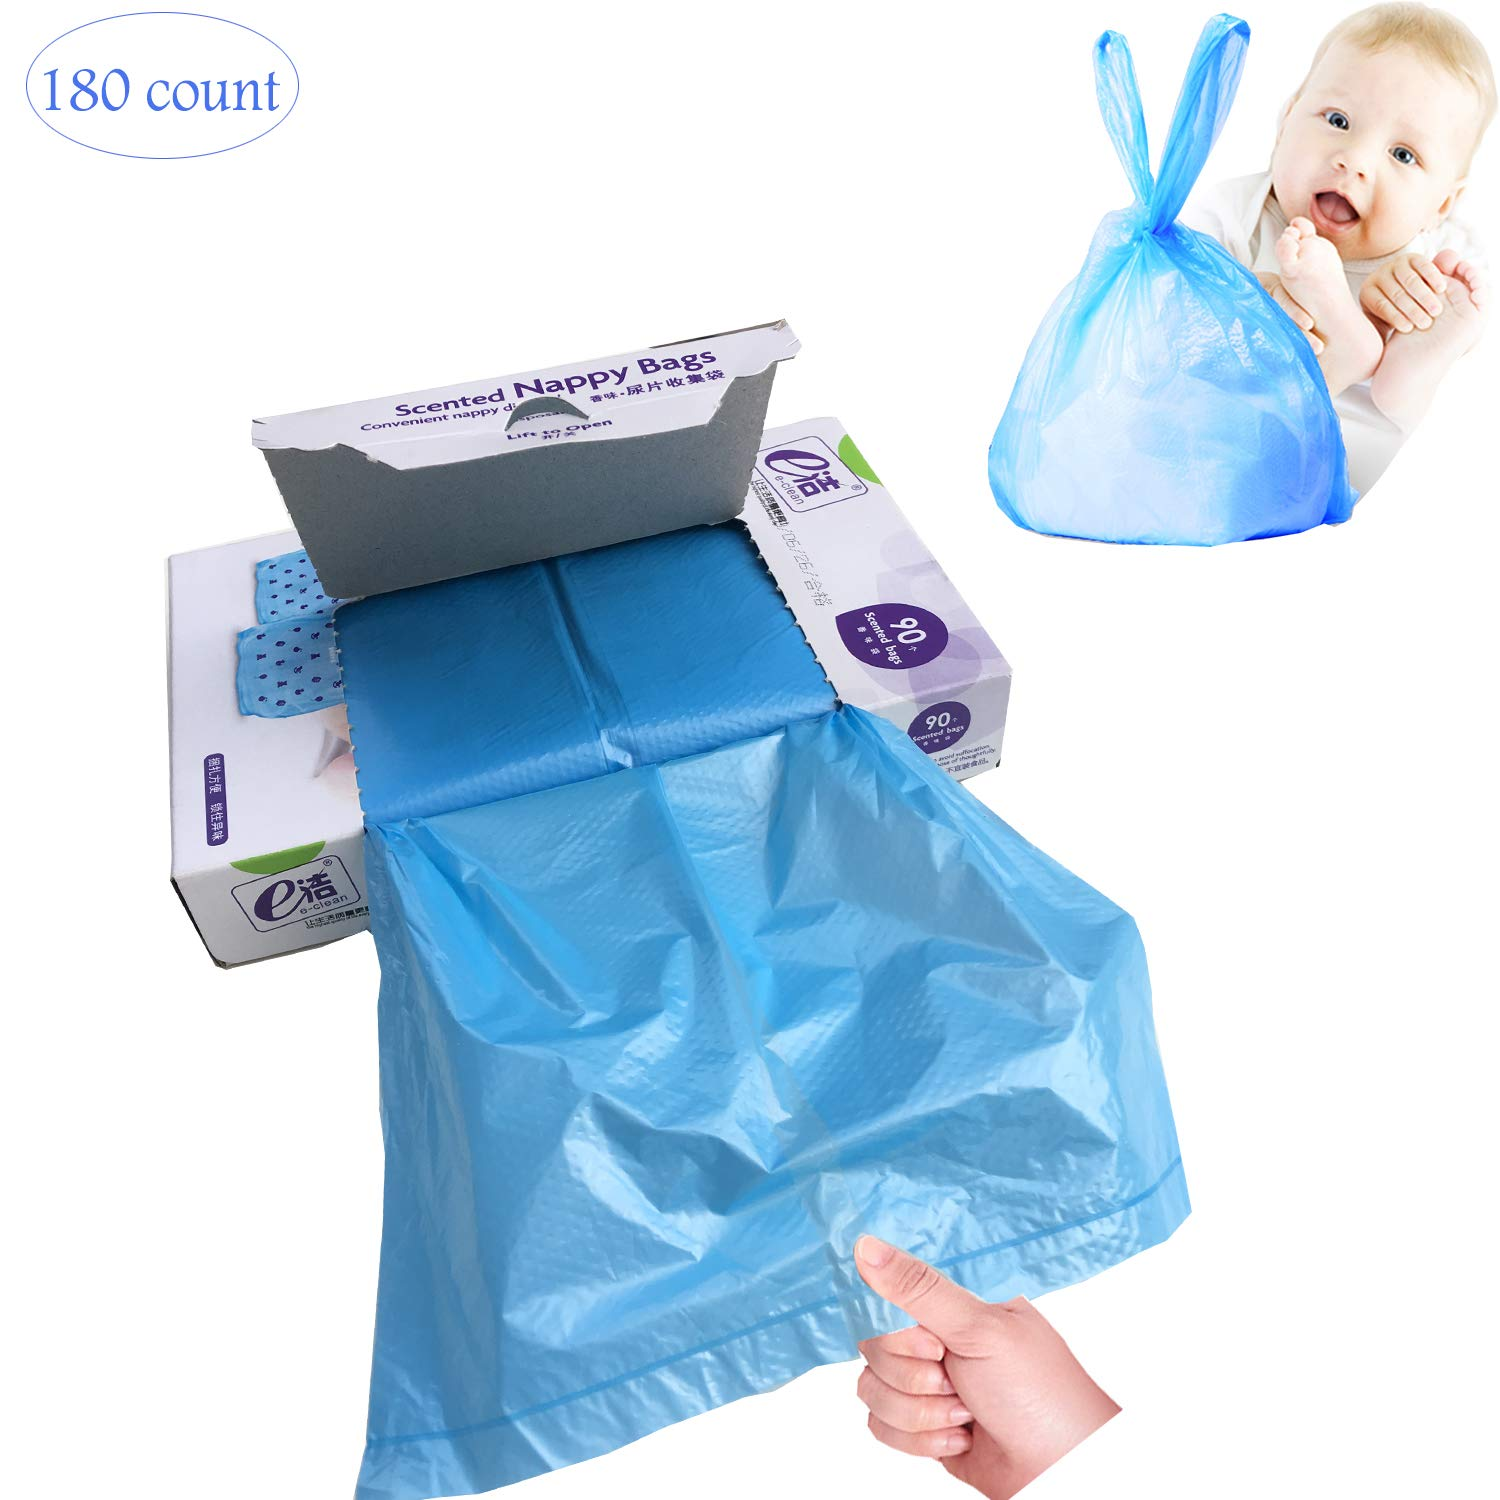 Disposable Scented Diaper Bags for Baby, Diaper Sacks Mask the Incontinence Odor Really, Fresh Light Baby Powder Scent, 180 Counts, Blue by HSD